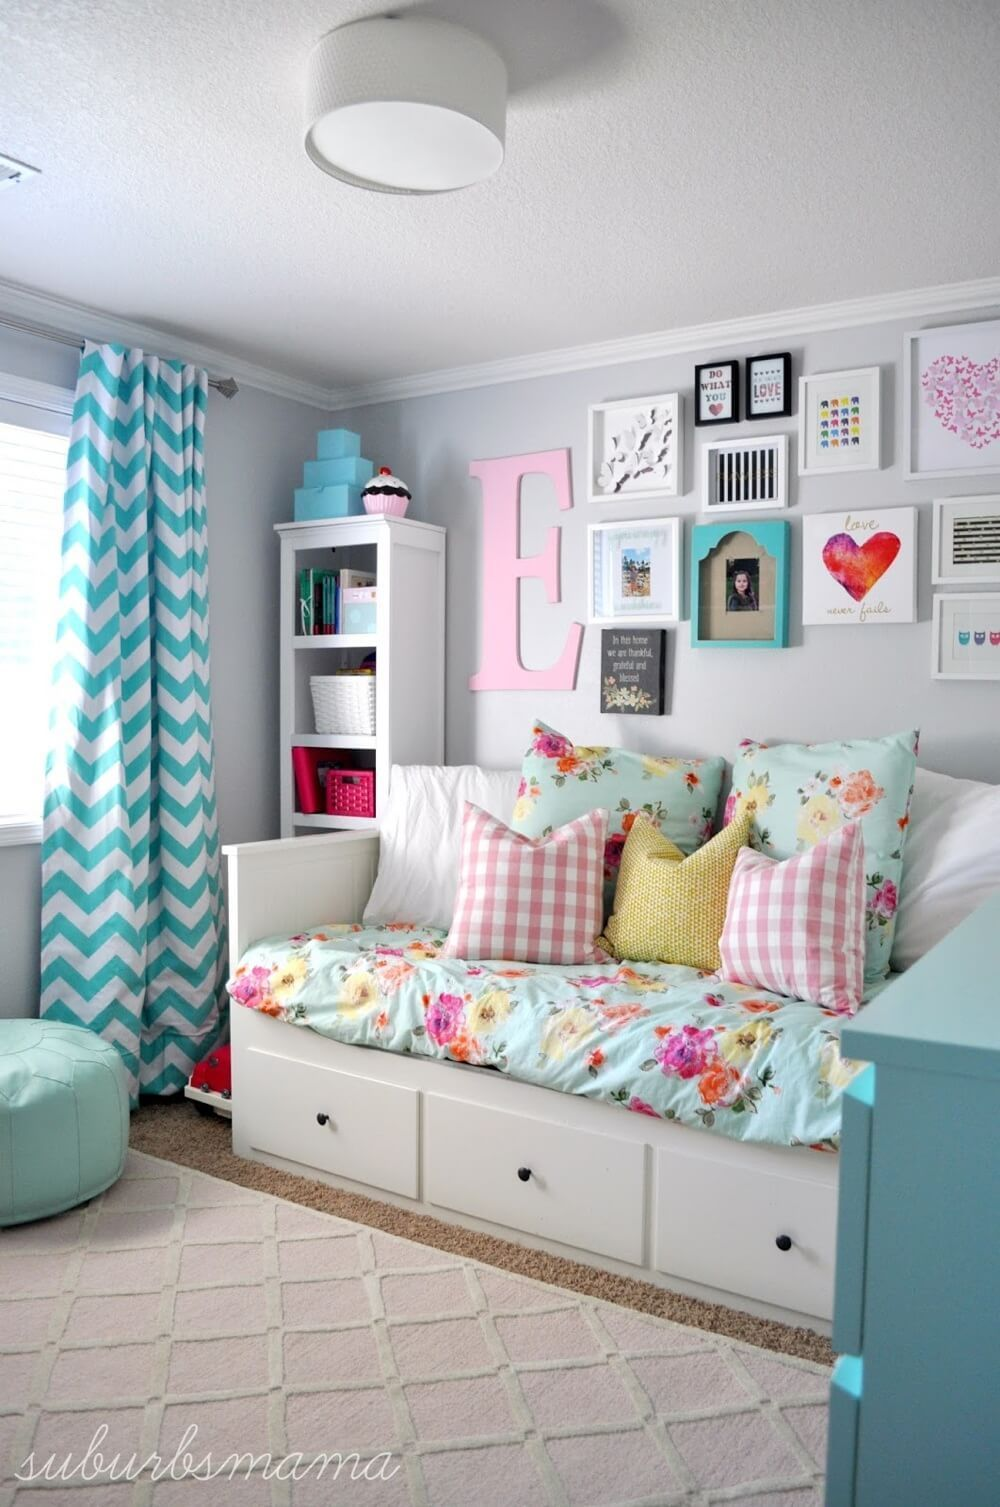 Teenage Girl Bedroom Ideas For A Teenage Girl Or Girls May Be A Little Tricky Because She Girl Bedroom Decor Girl Bedroom Designs Teenage Girl Bedroom Designs Teenage bedroom ideas amazon